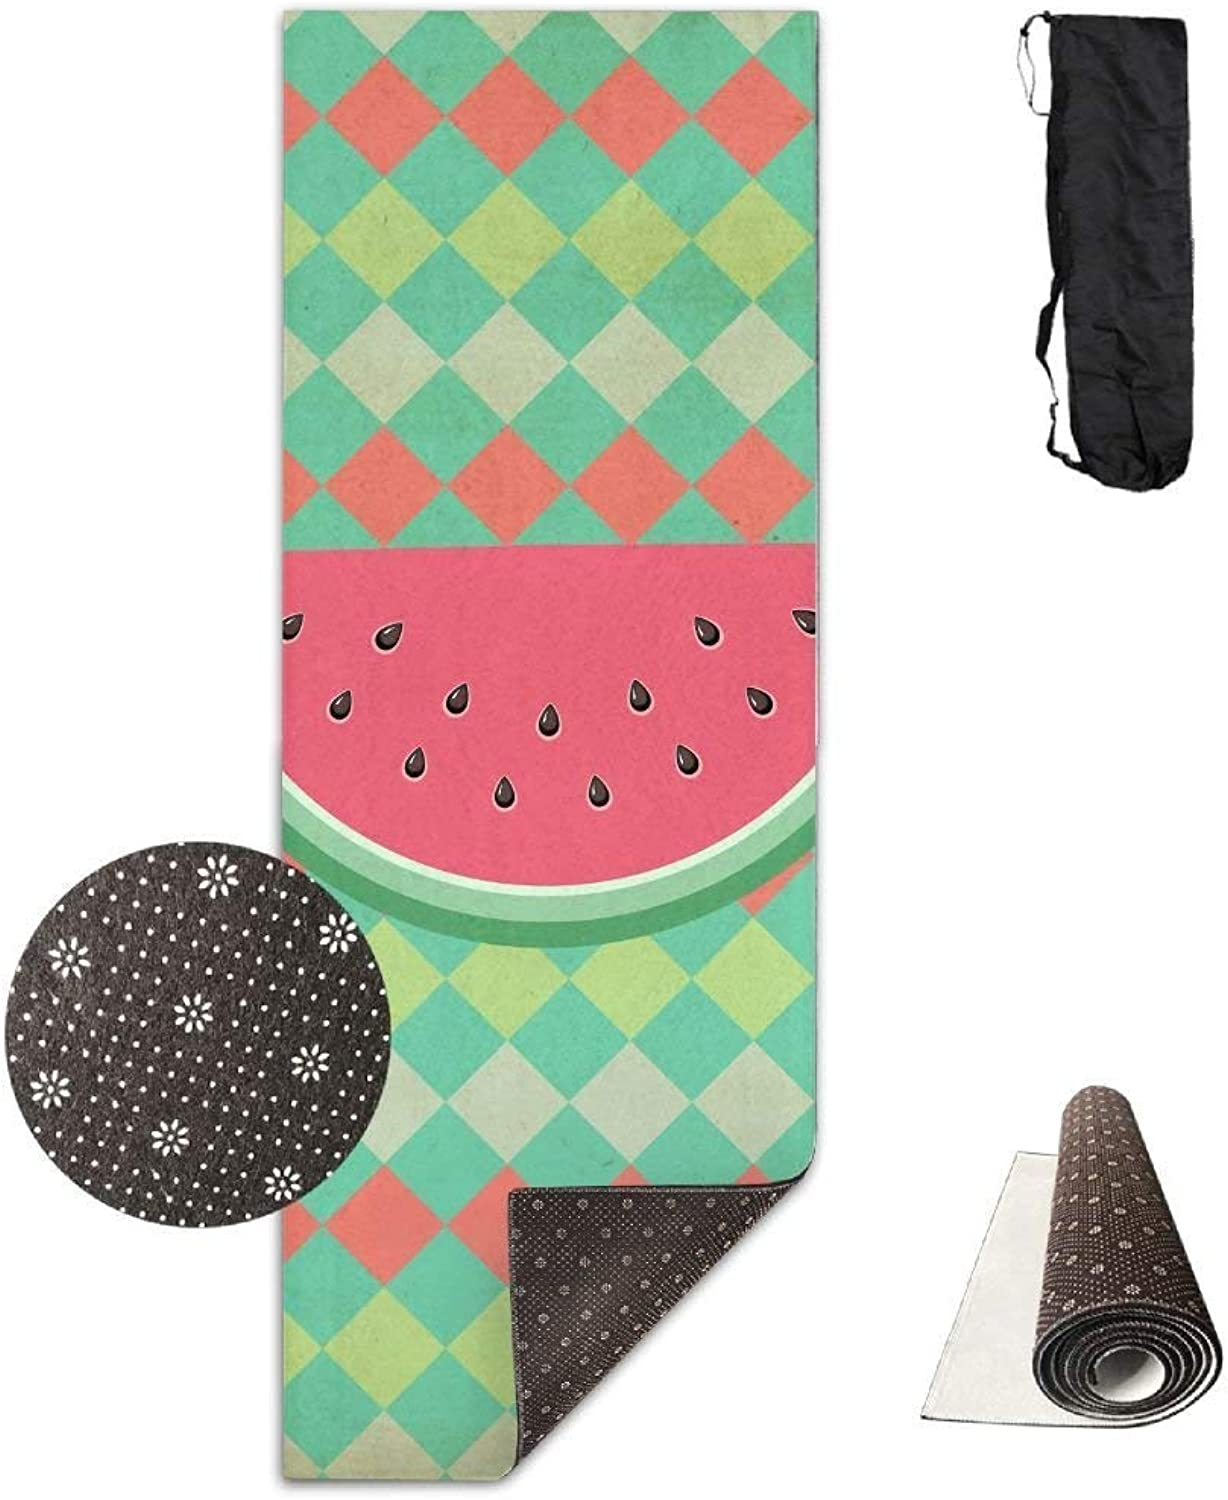 Yoga Mat Non Slip Watermelon Printed 24 X 71 Inches Premium for Fitness Exercise Pilates with Carrying Strap